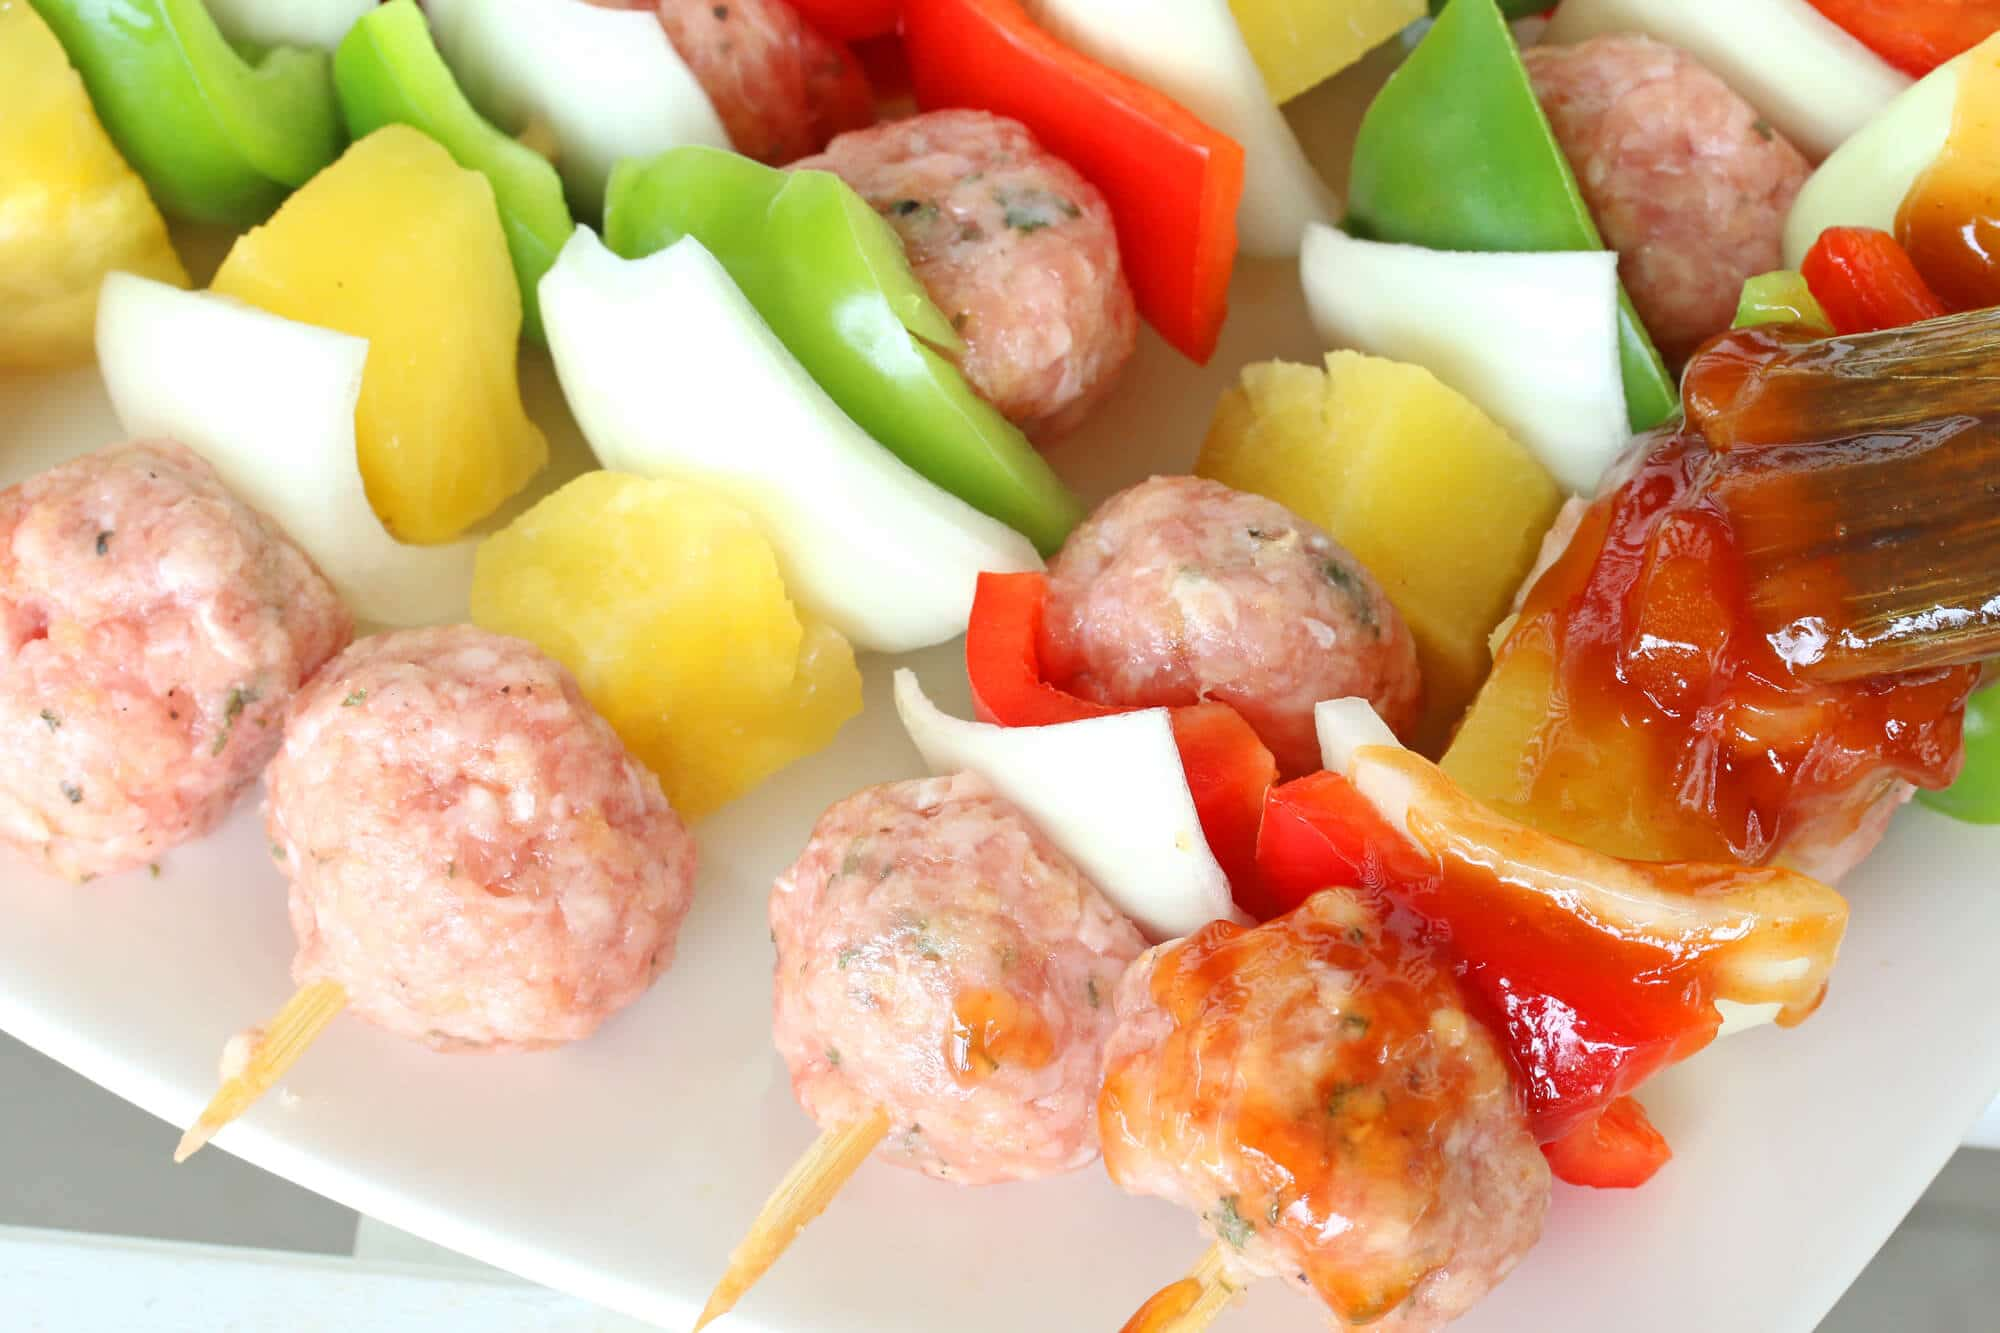 meatball kabobs kebabs recipe grilled sweet sour sauce veal beef chicken pork lamb healthy pineapple vegetables low sugar gluten free